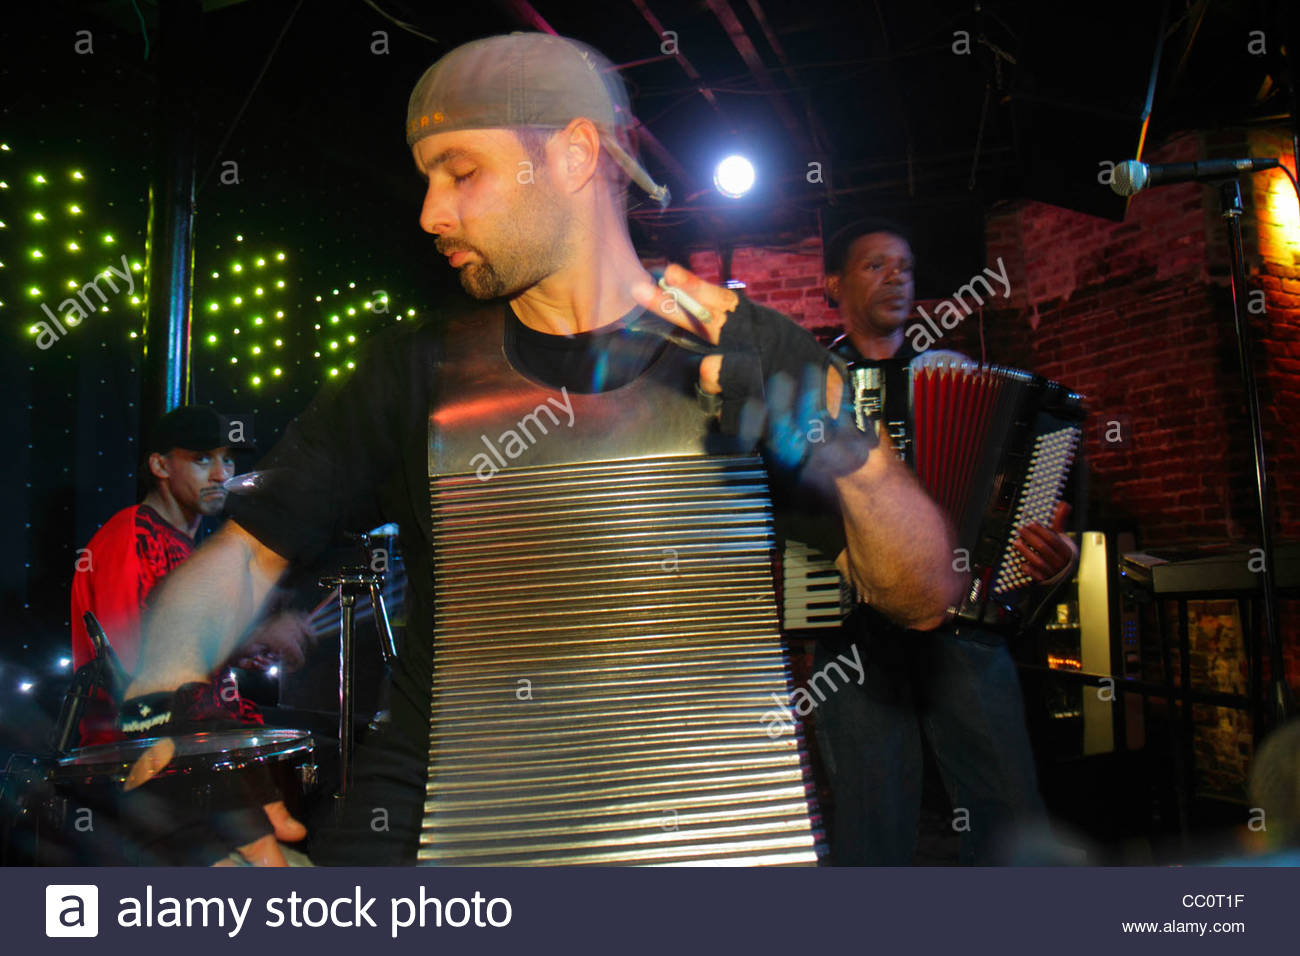 New Orleans Louisiana French Quarter Bourbon Street business bar nightlife live music entertainment perform musician - Stock Image